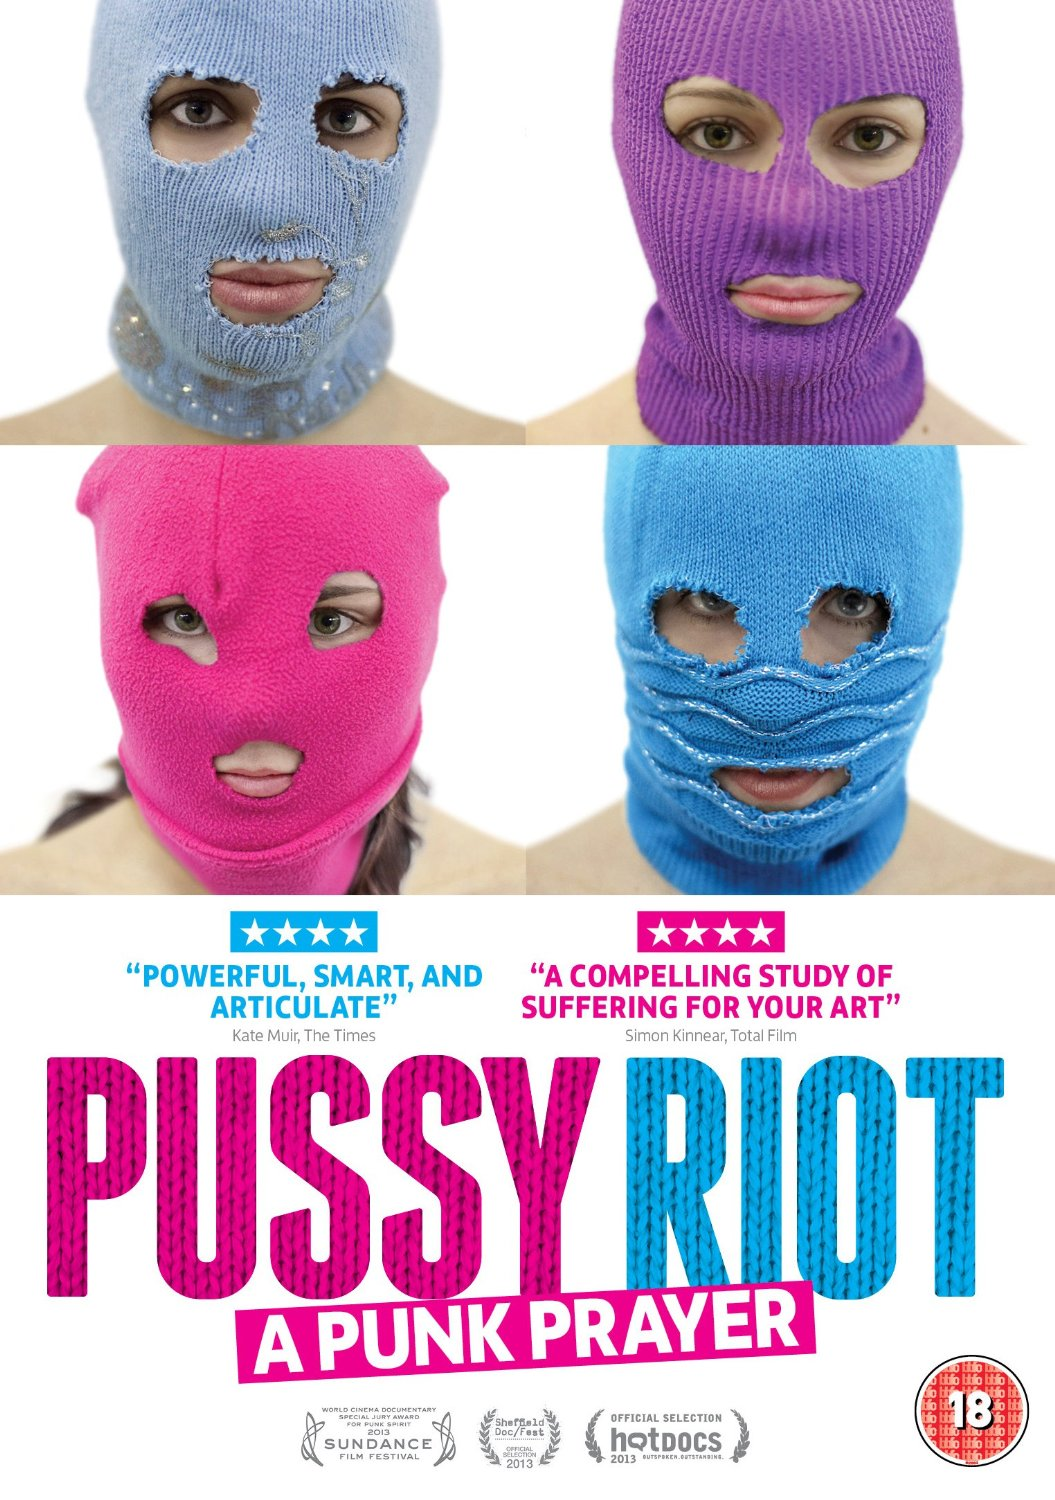 Pussy Riot: A Punk Prayer – Directed by Mike Lerner and Maxim Pozdorovkin